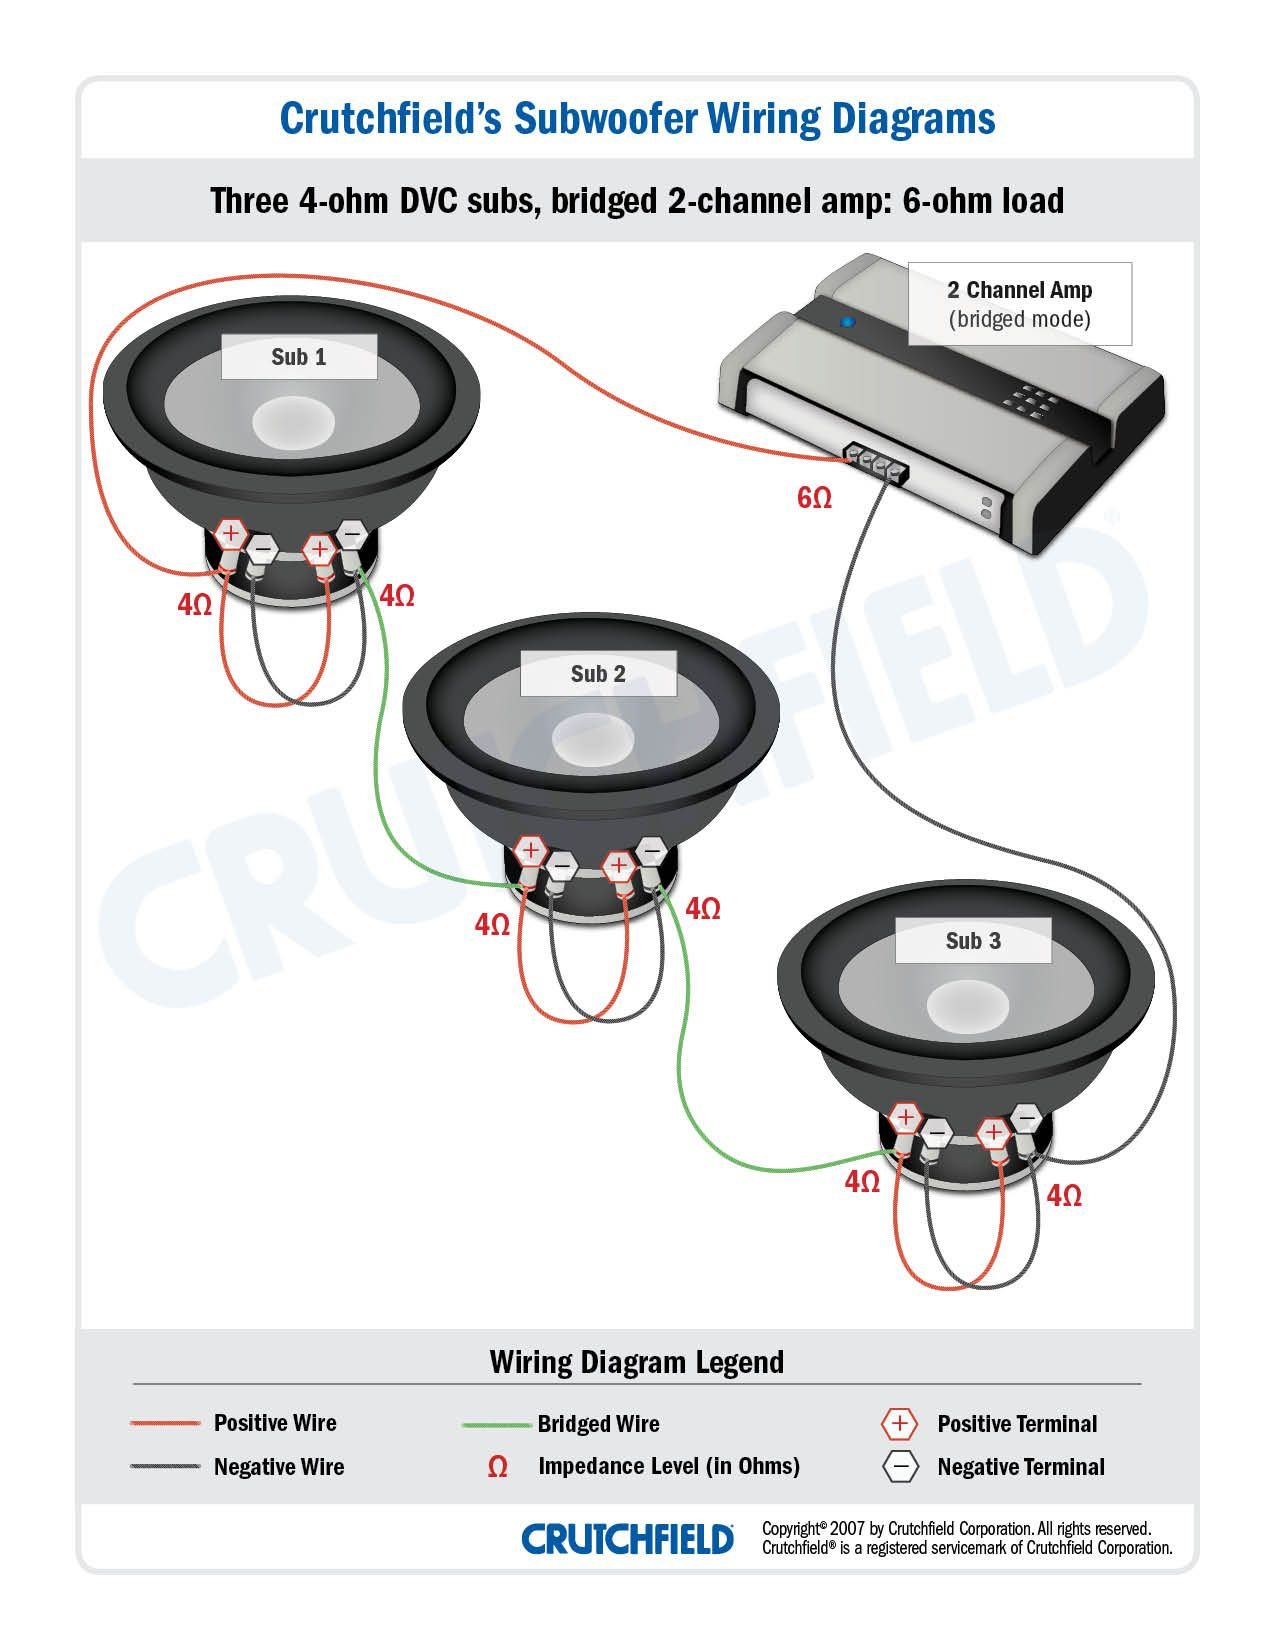 top 10 subwoofer wiring diagram free download 3 dvc 4 ohm 2 ch and rh pinterest com